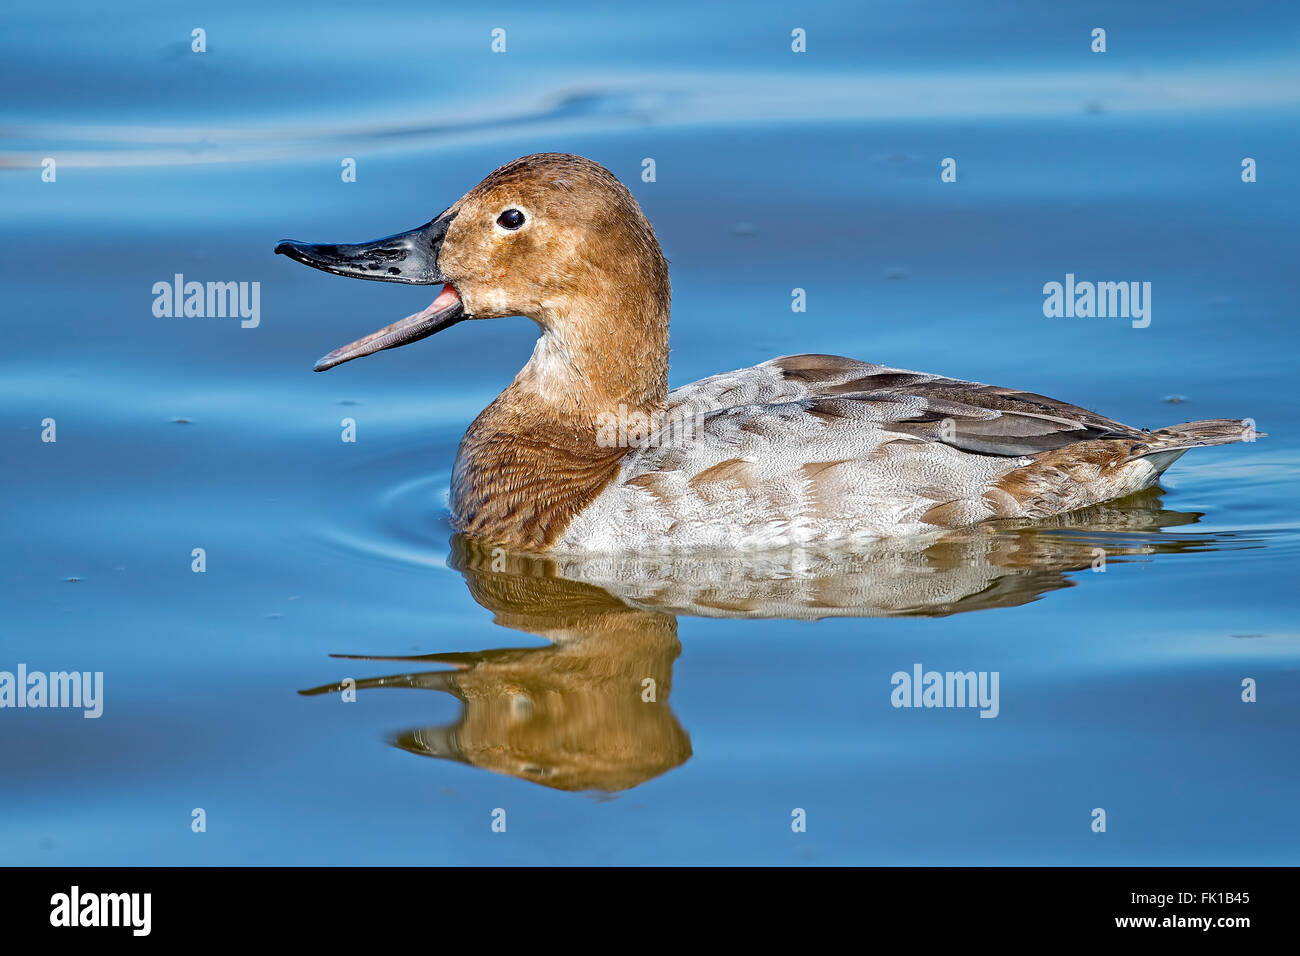 Female Canvasback Duck - Stock Image